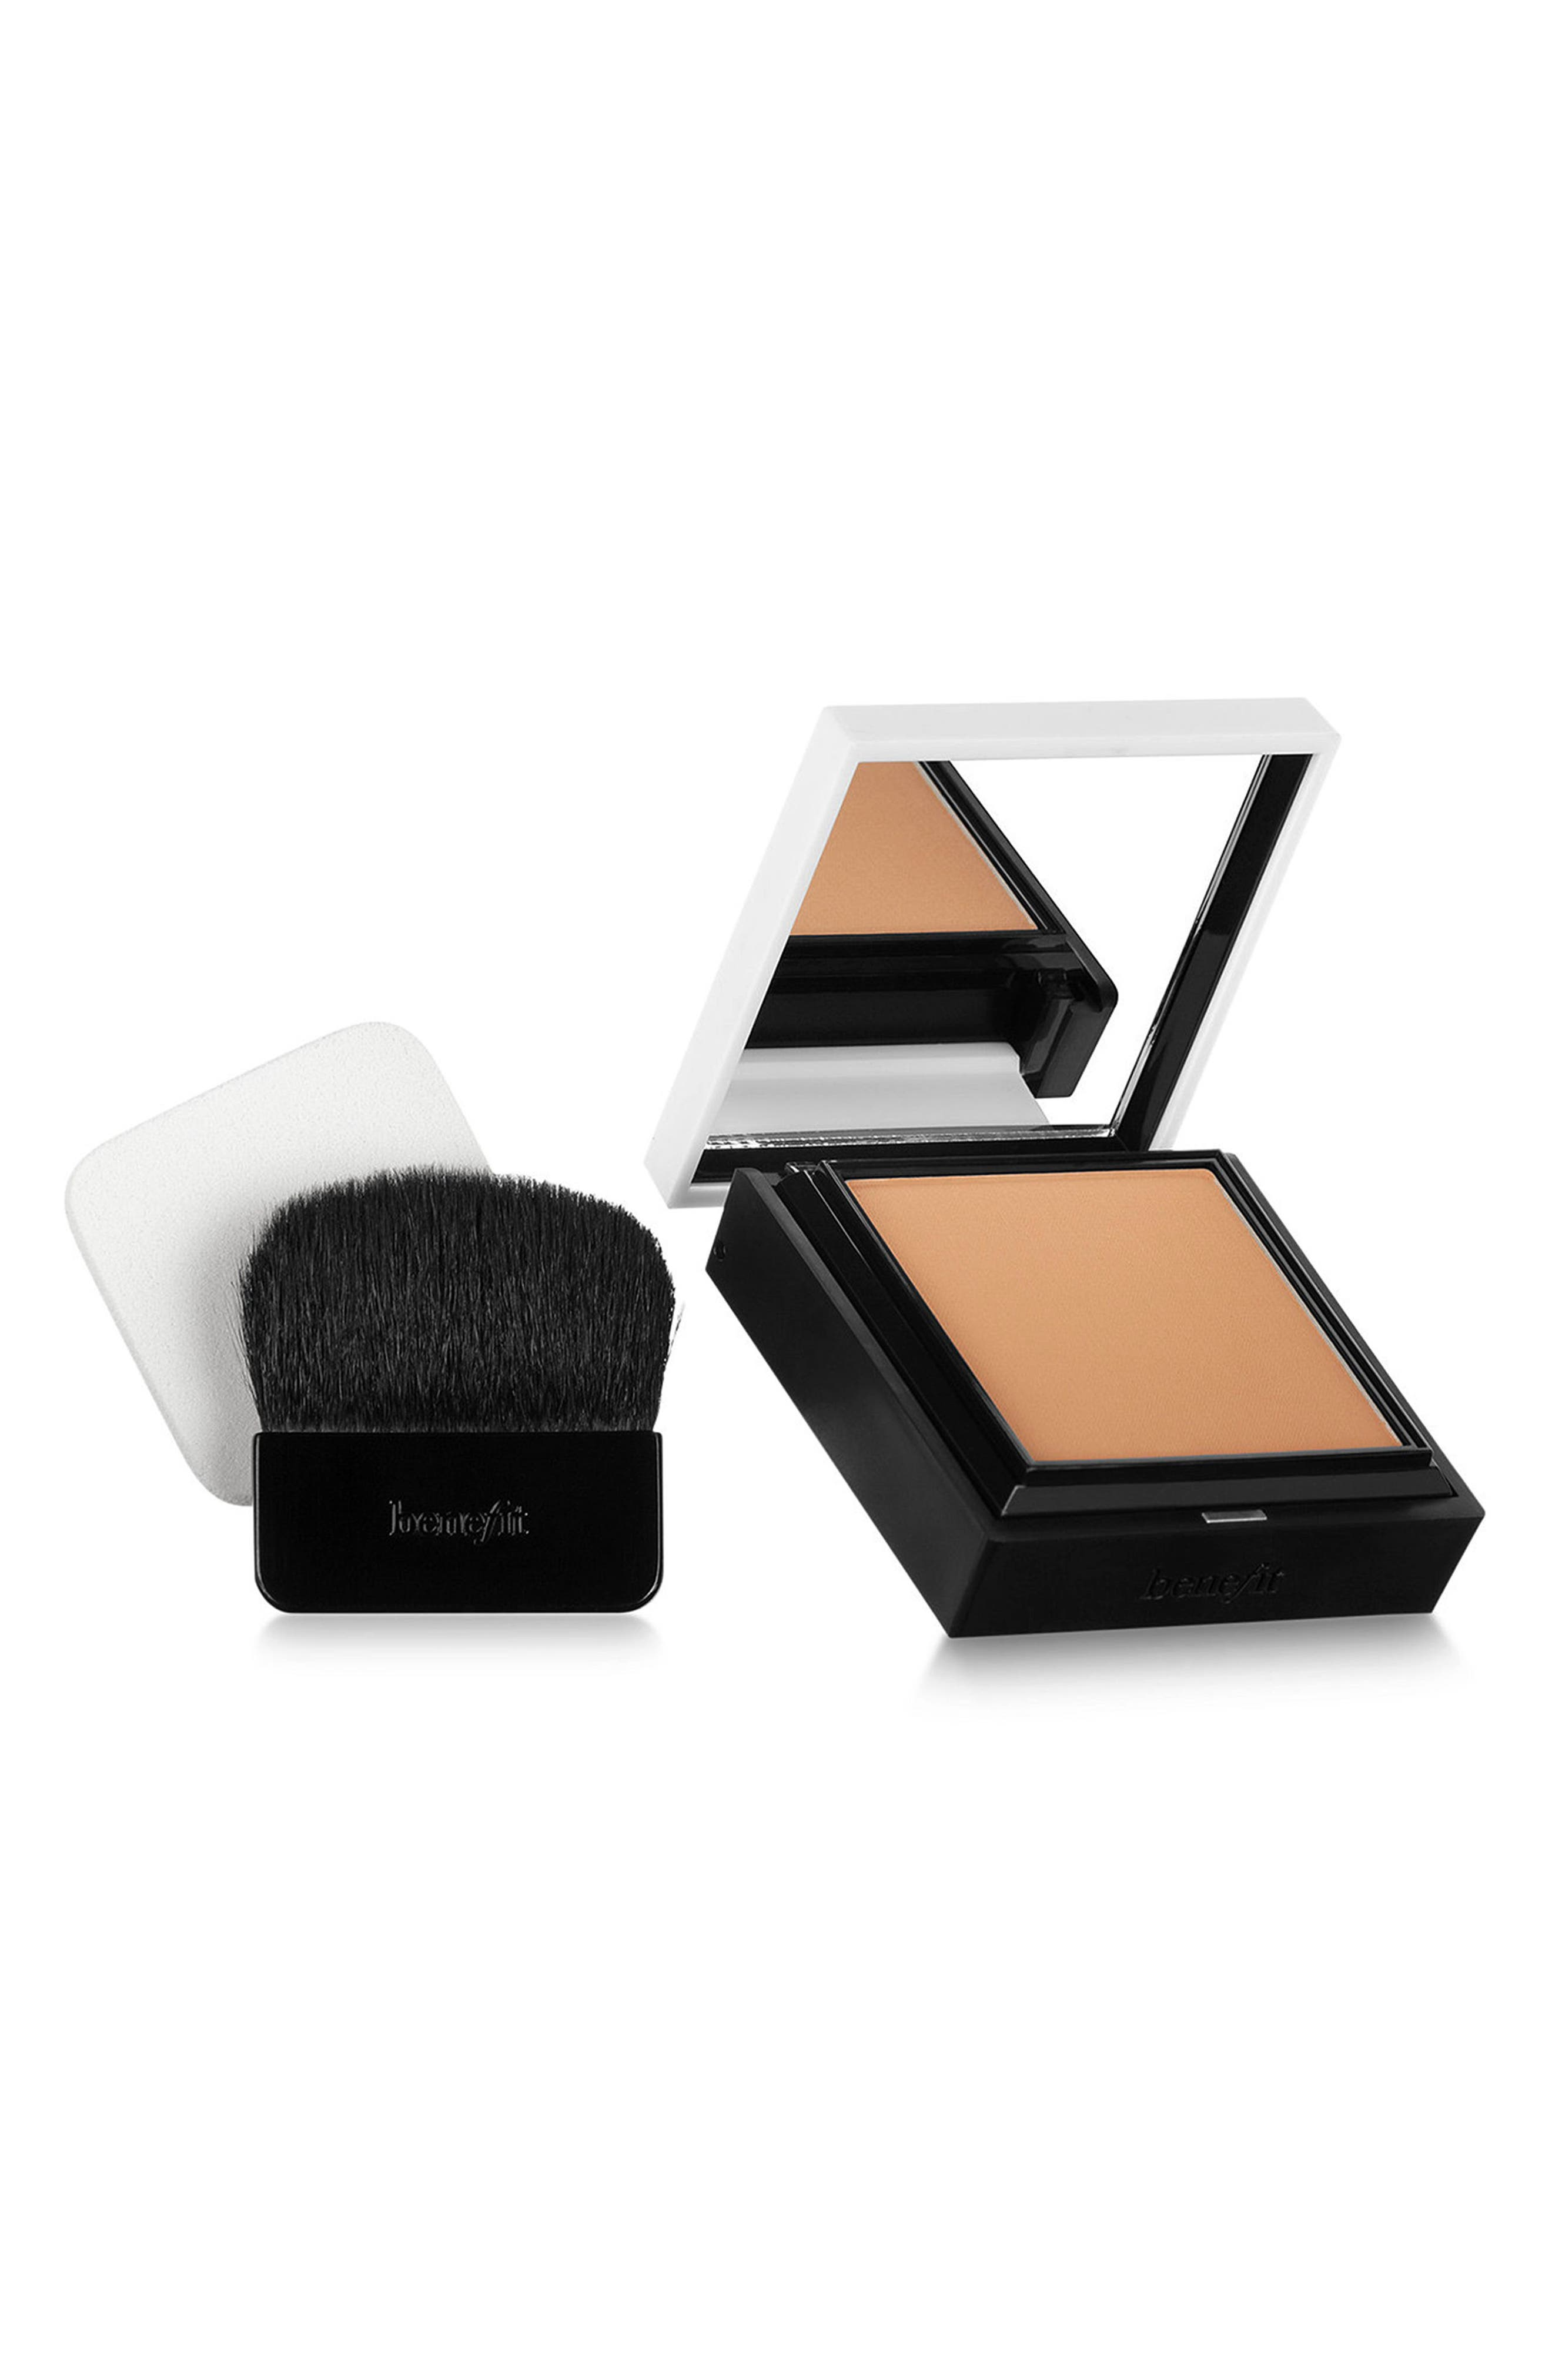 Benefit Hello Flawless! Powder Foundation